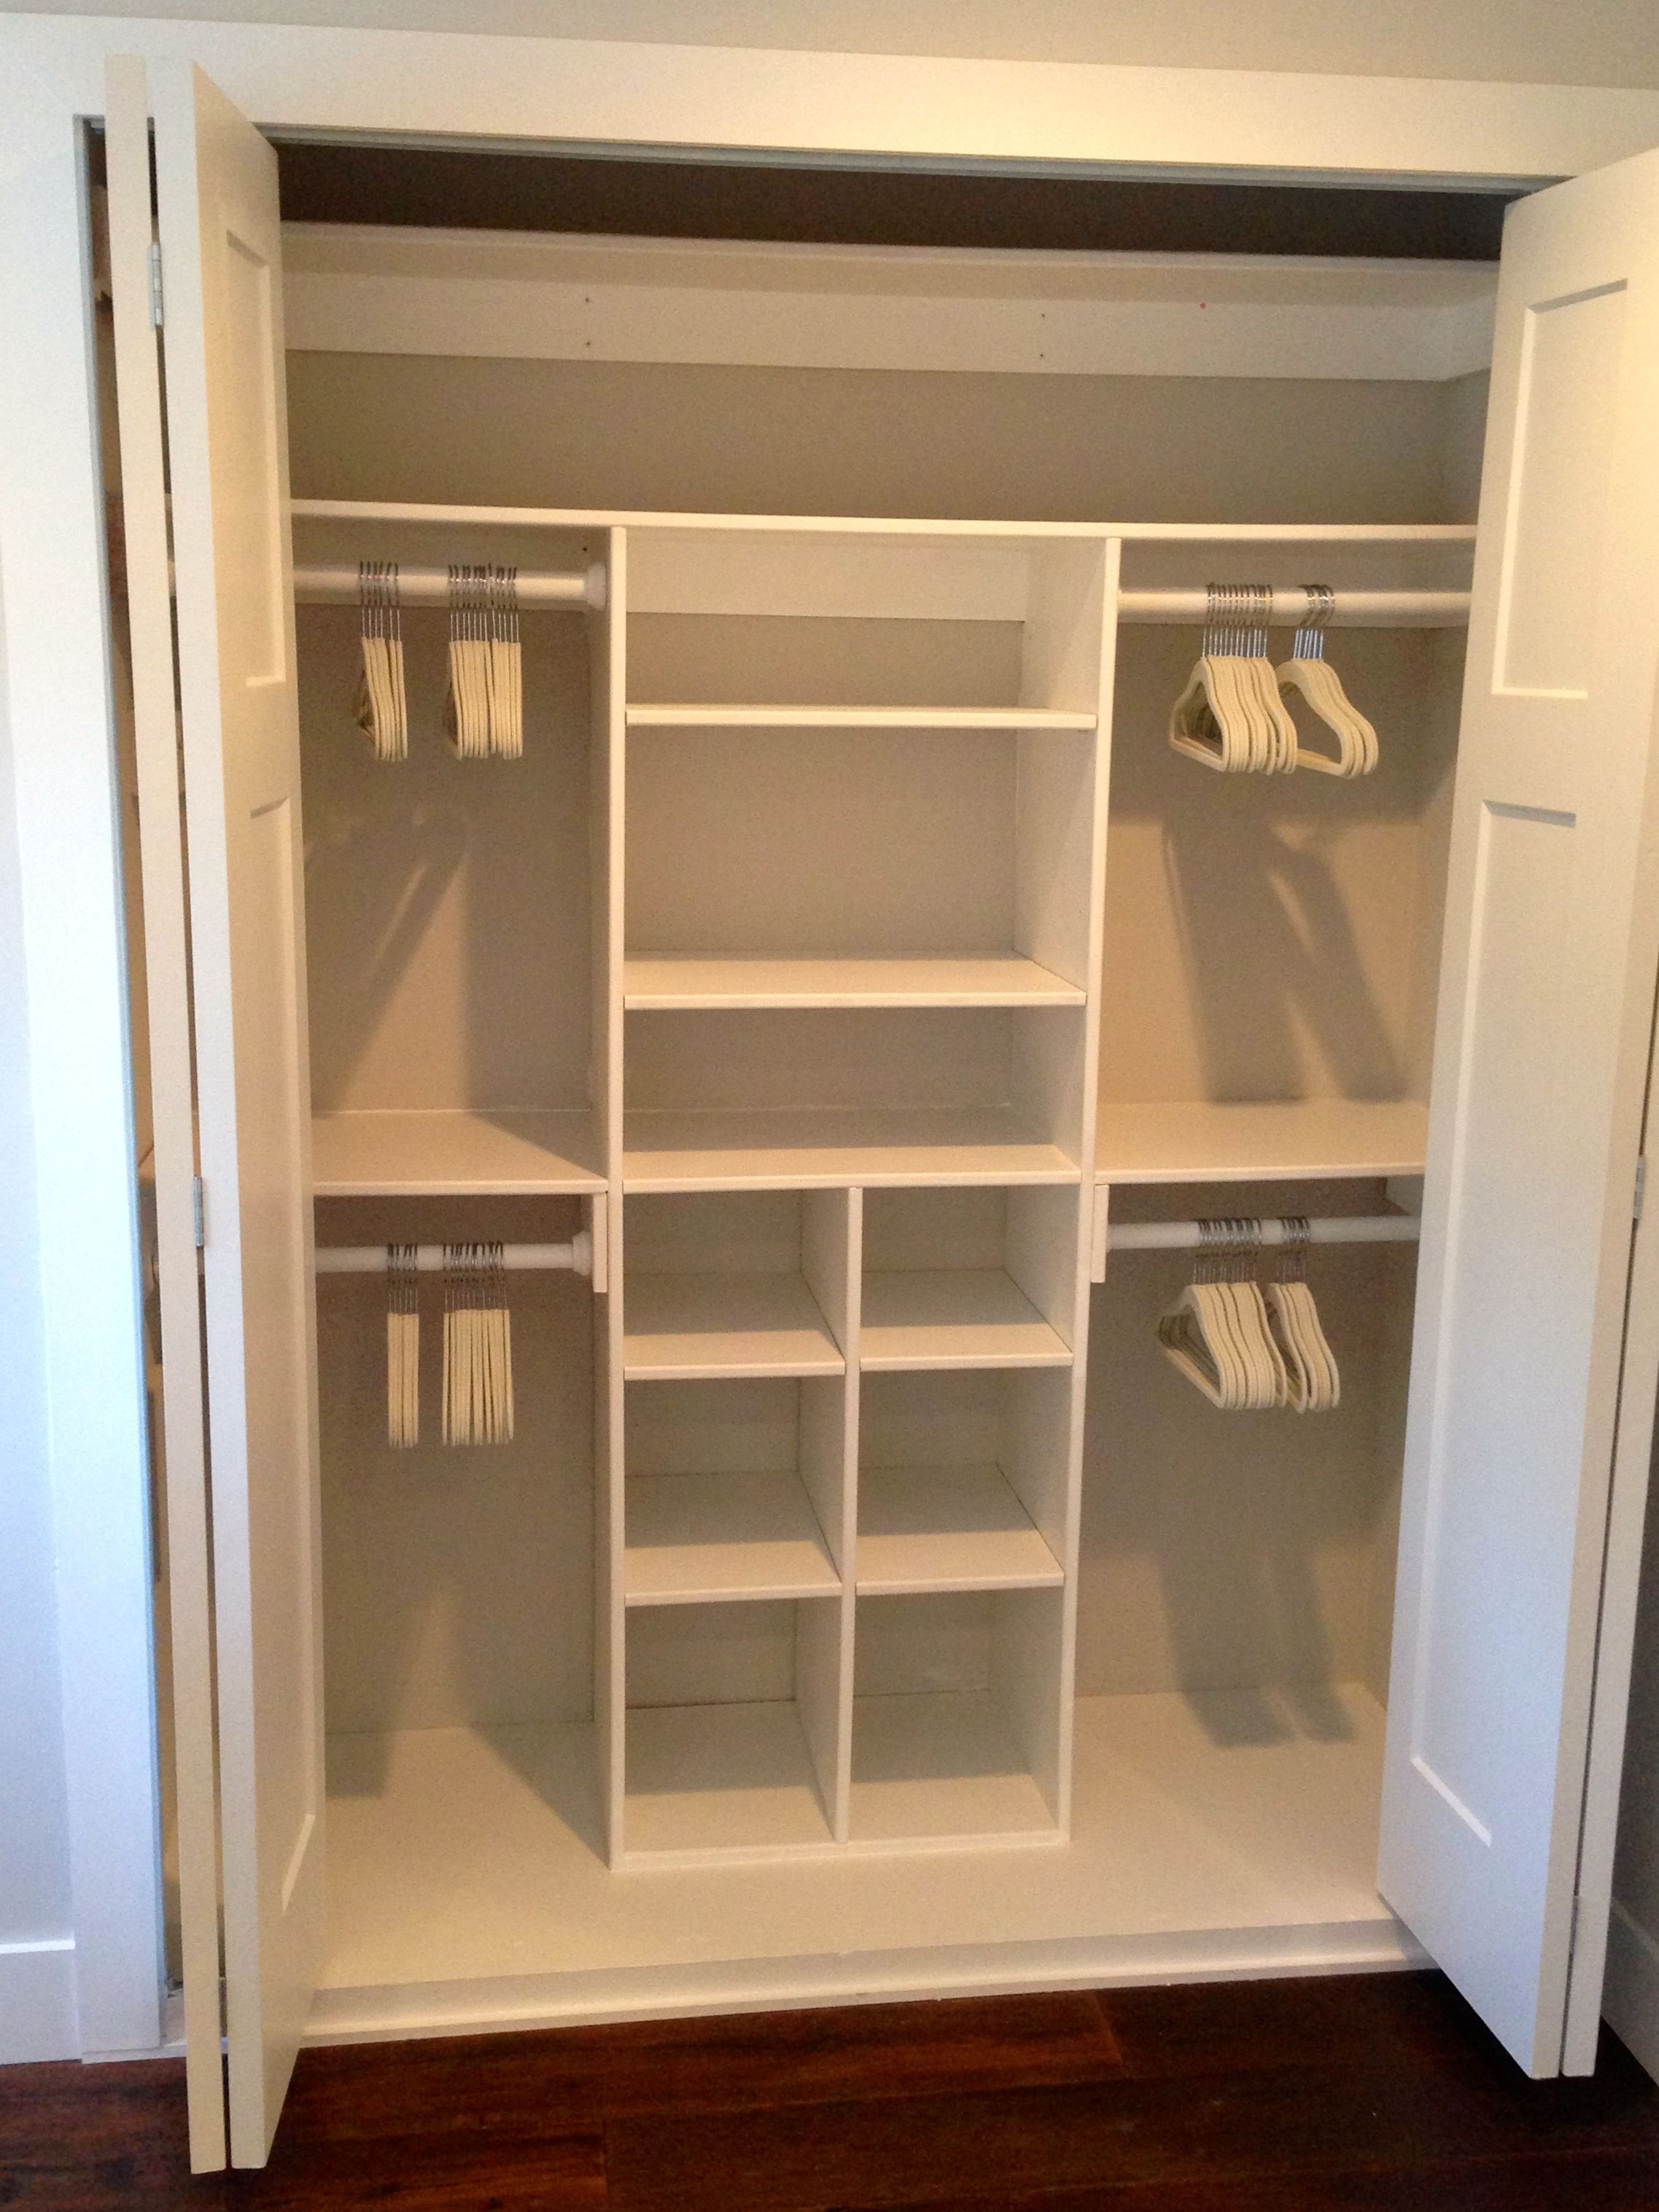 Beau Just My Size Closet | Do It Yourself Home Projects From Ana White